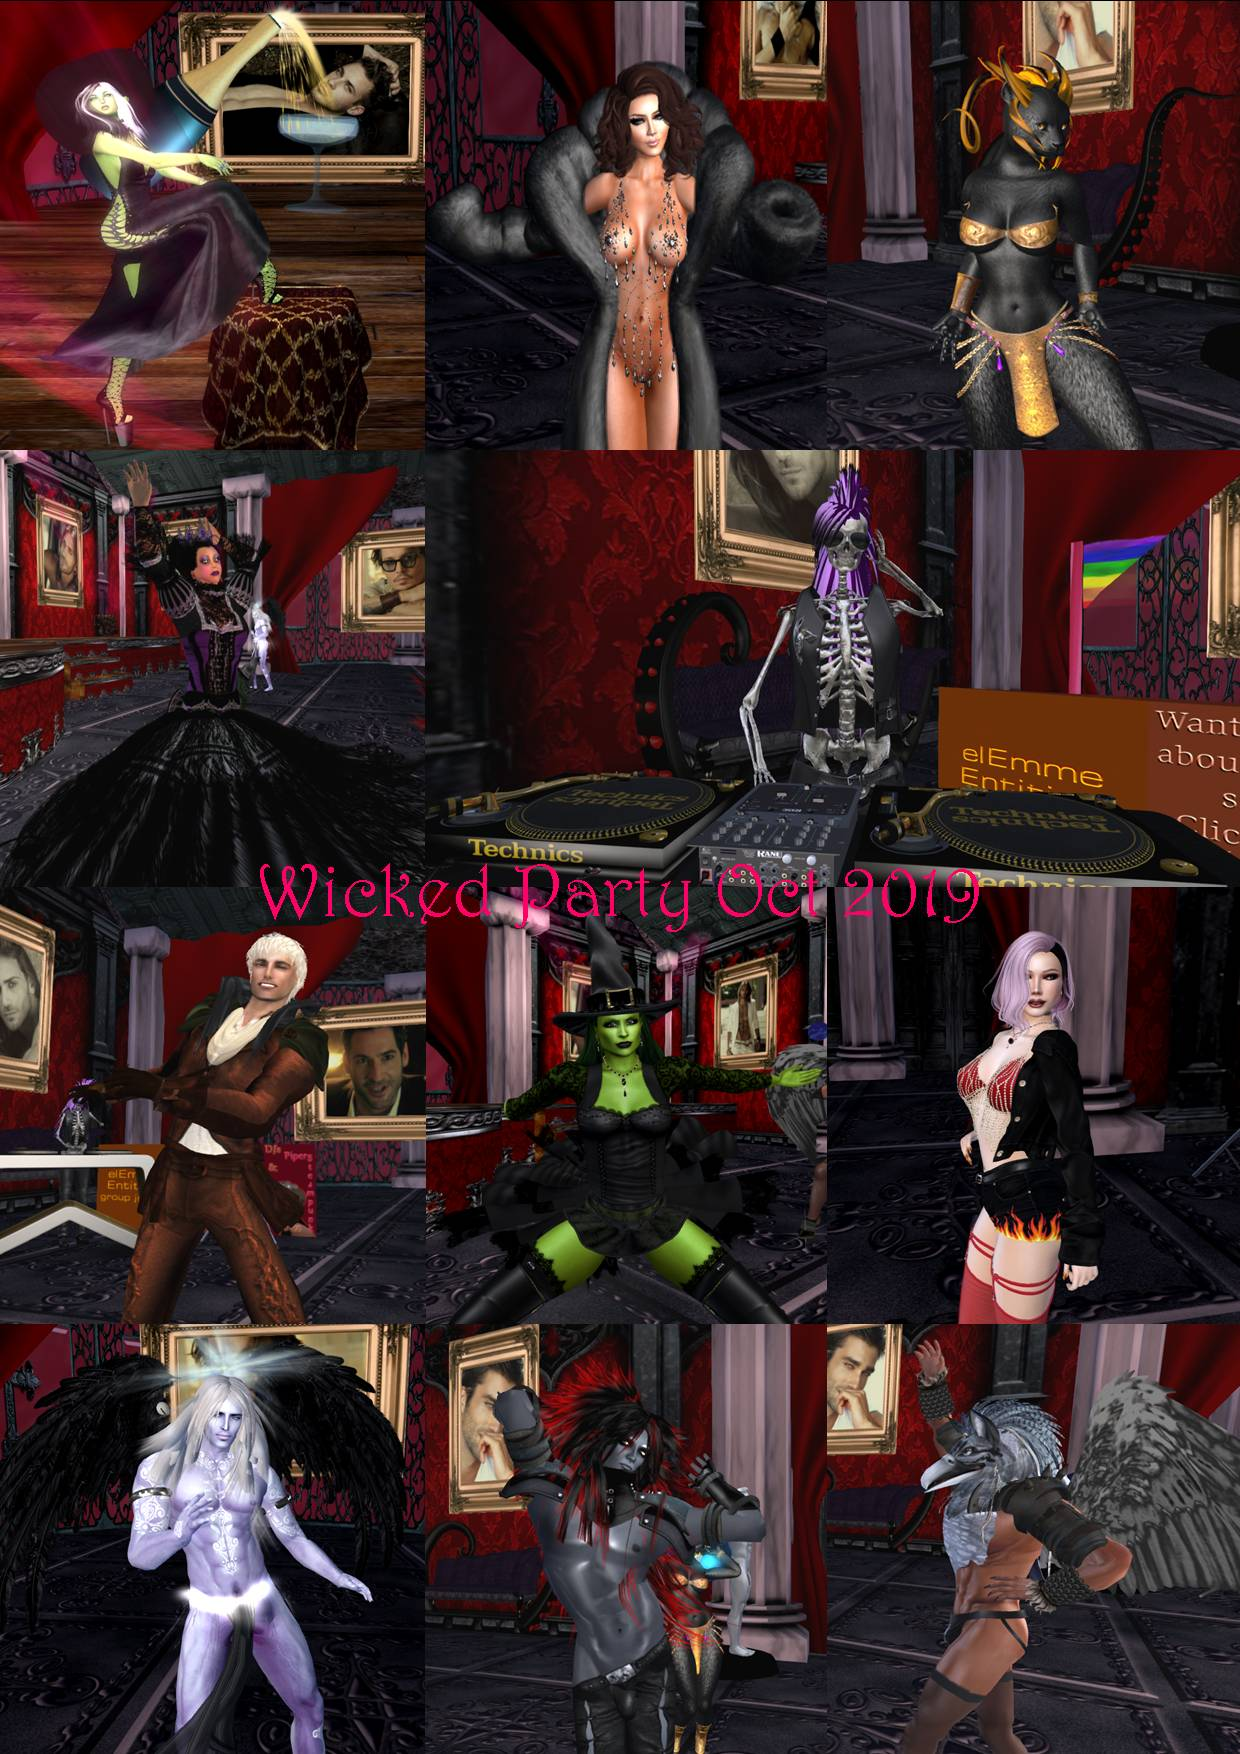 WICKED PARTY COLLAGE OCT 2019